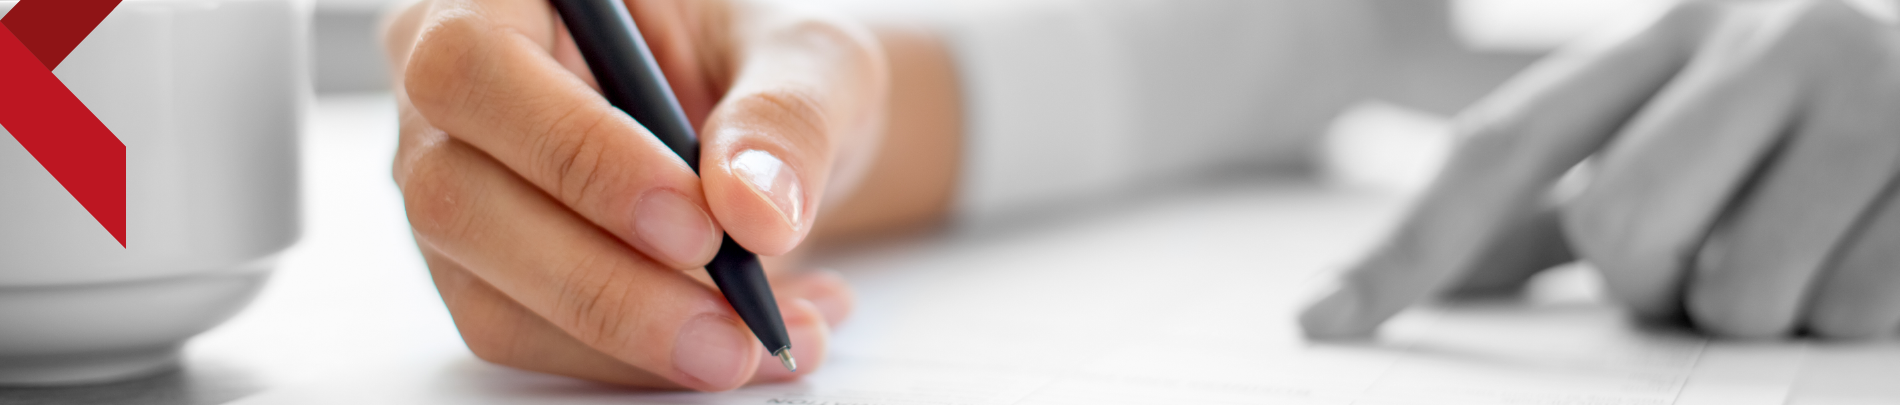 Close up of someone signing a form